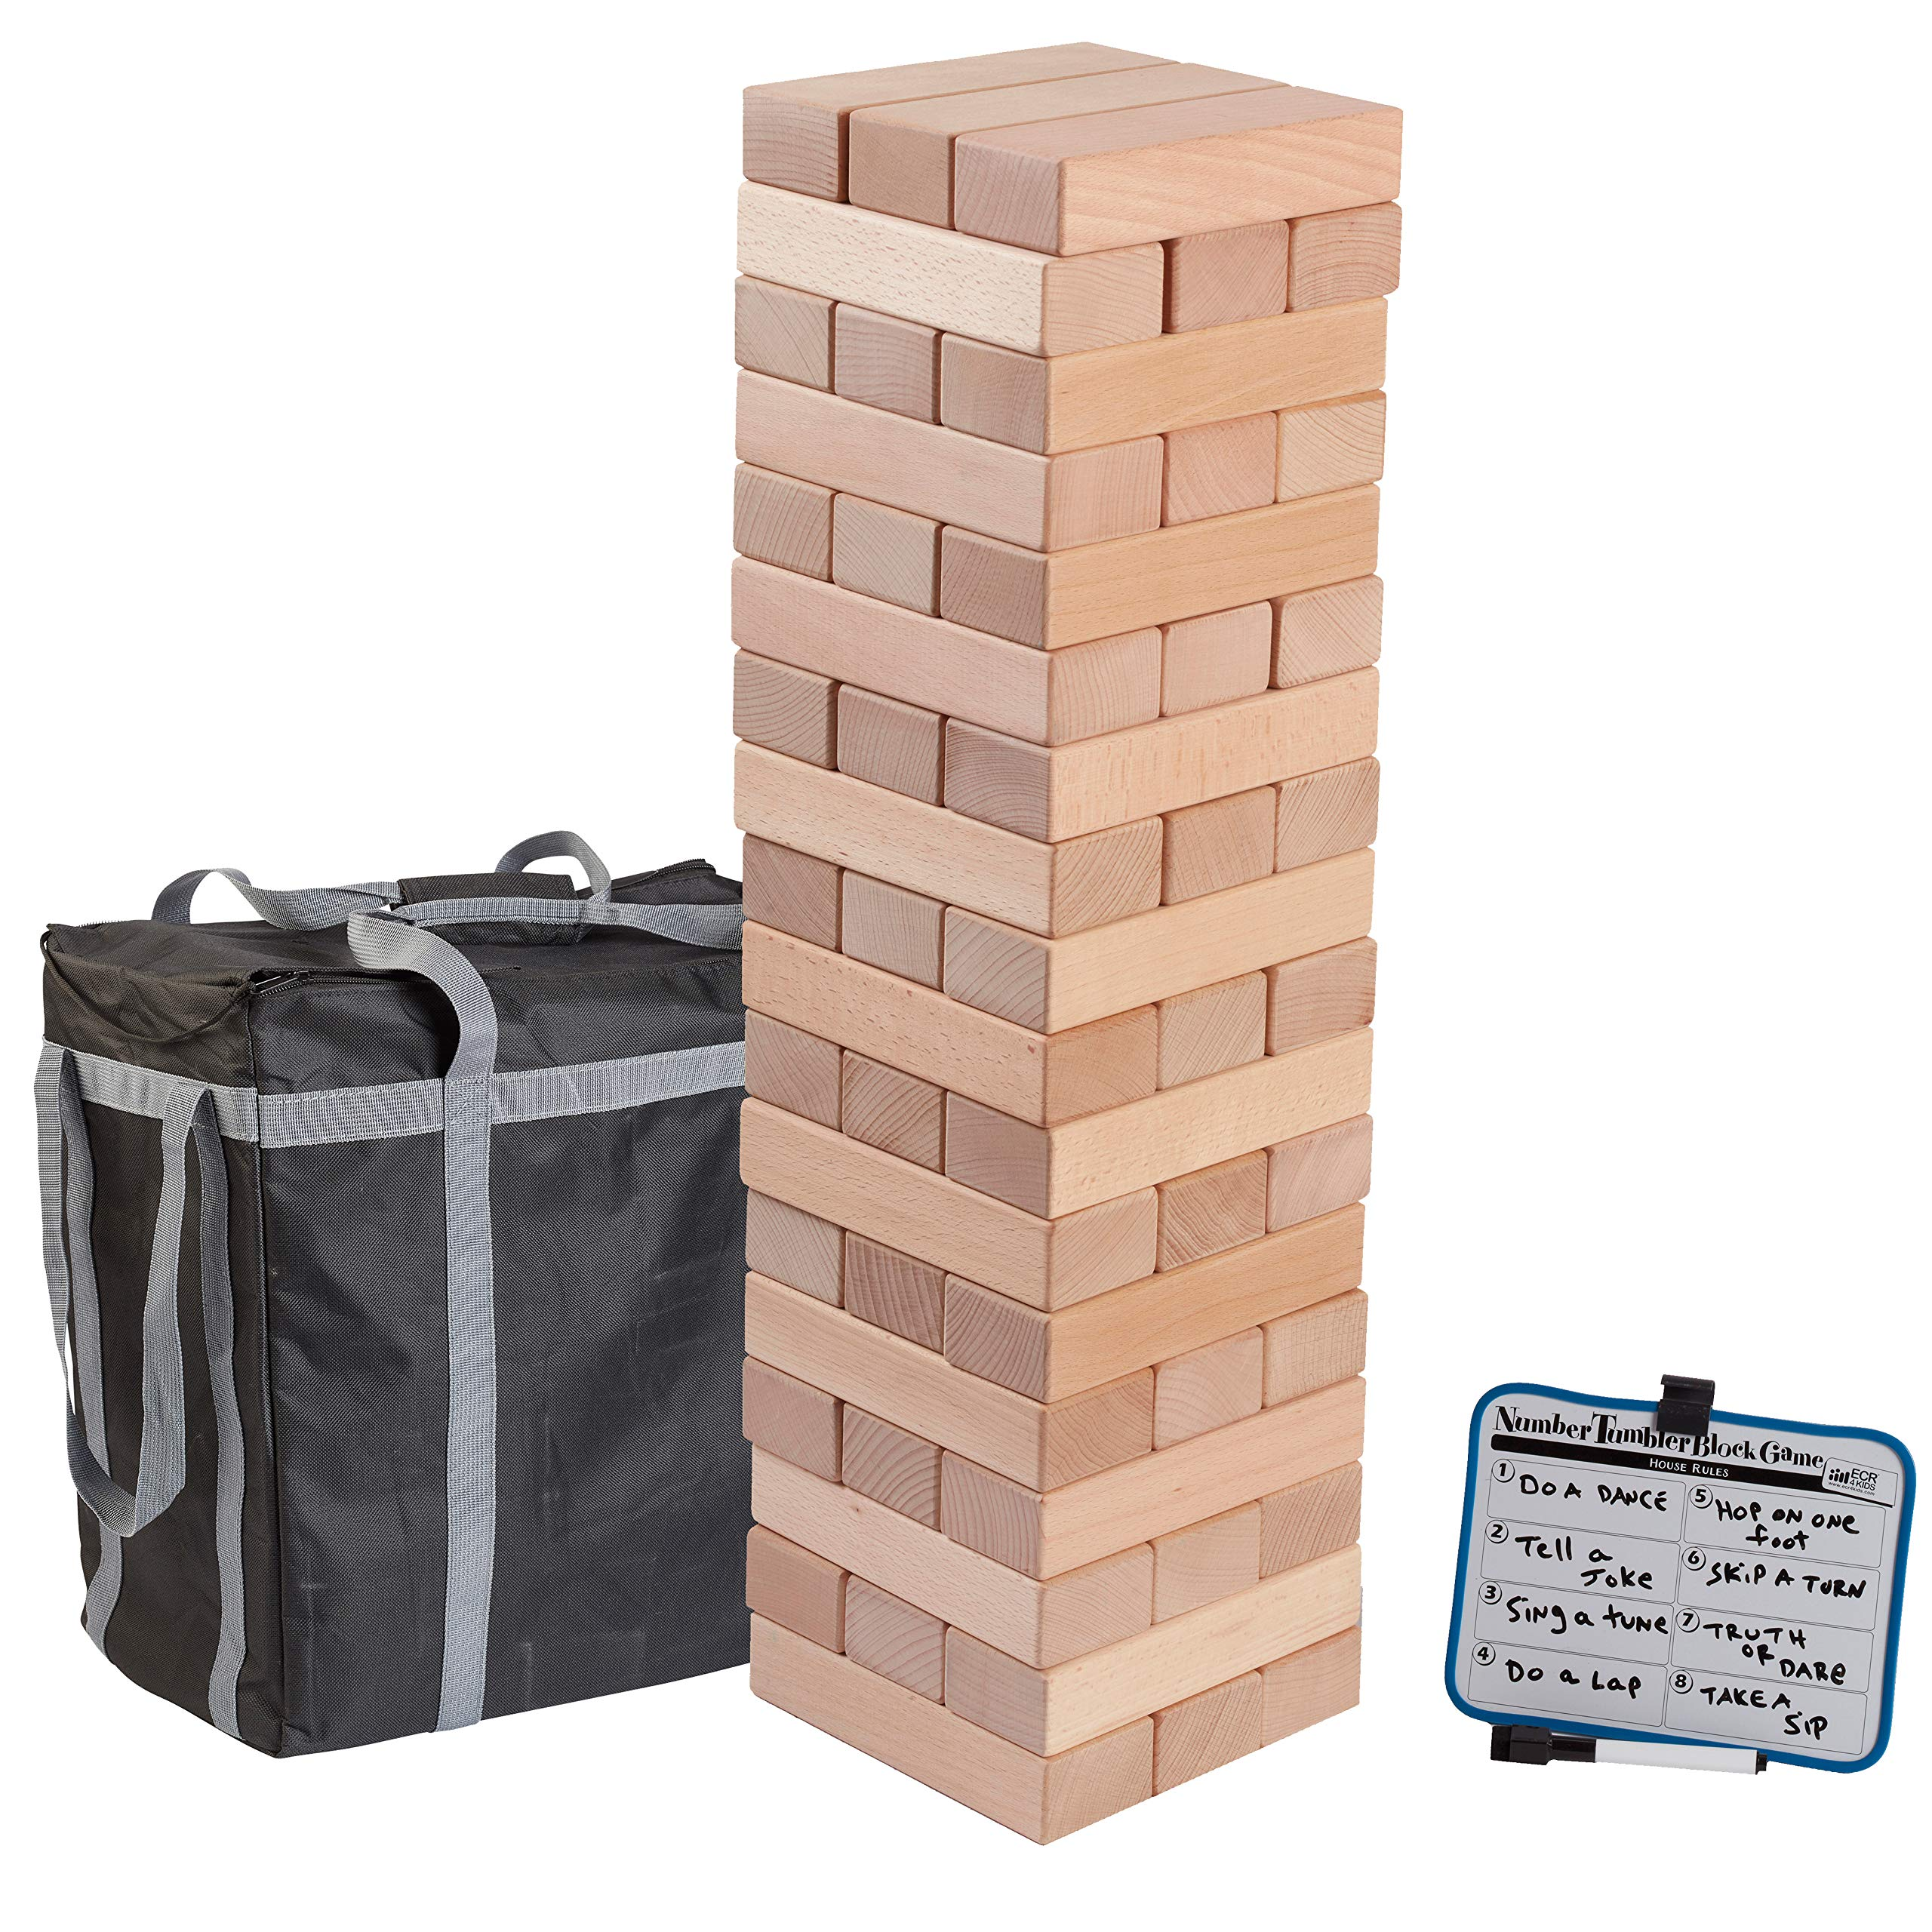 ECR4Kids Number Tumbler Giant Tumble Tower (Stacks to 5+ Feet), Large Wood Stacking Block Game with Storage Bag and Dry-Erase Board for Bonus Rules, Jumbo 28'' Tall (54-Piece Set)